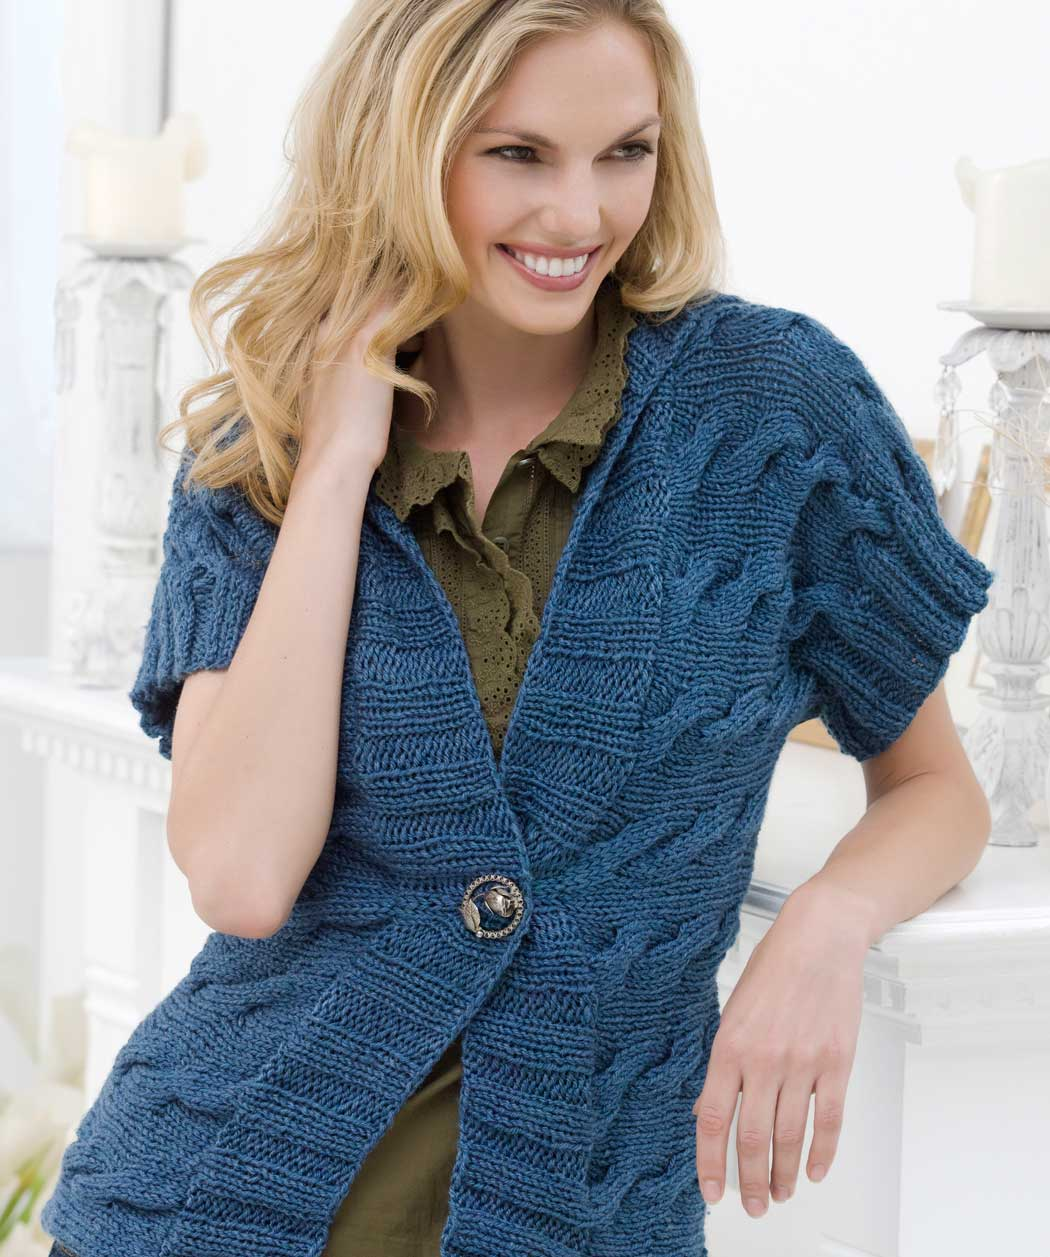 Cardigan Knitting Patterns Free : Knitted Sweater Patterns for Women A Knitting Blog